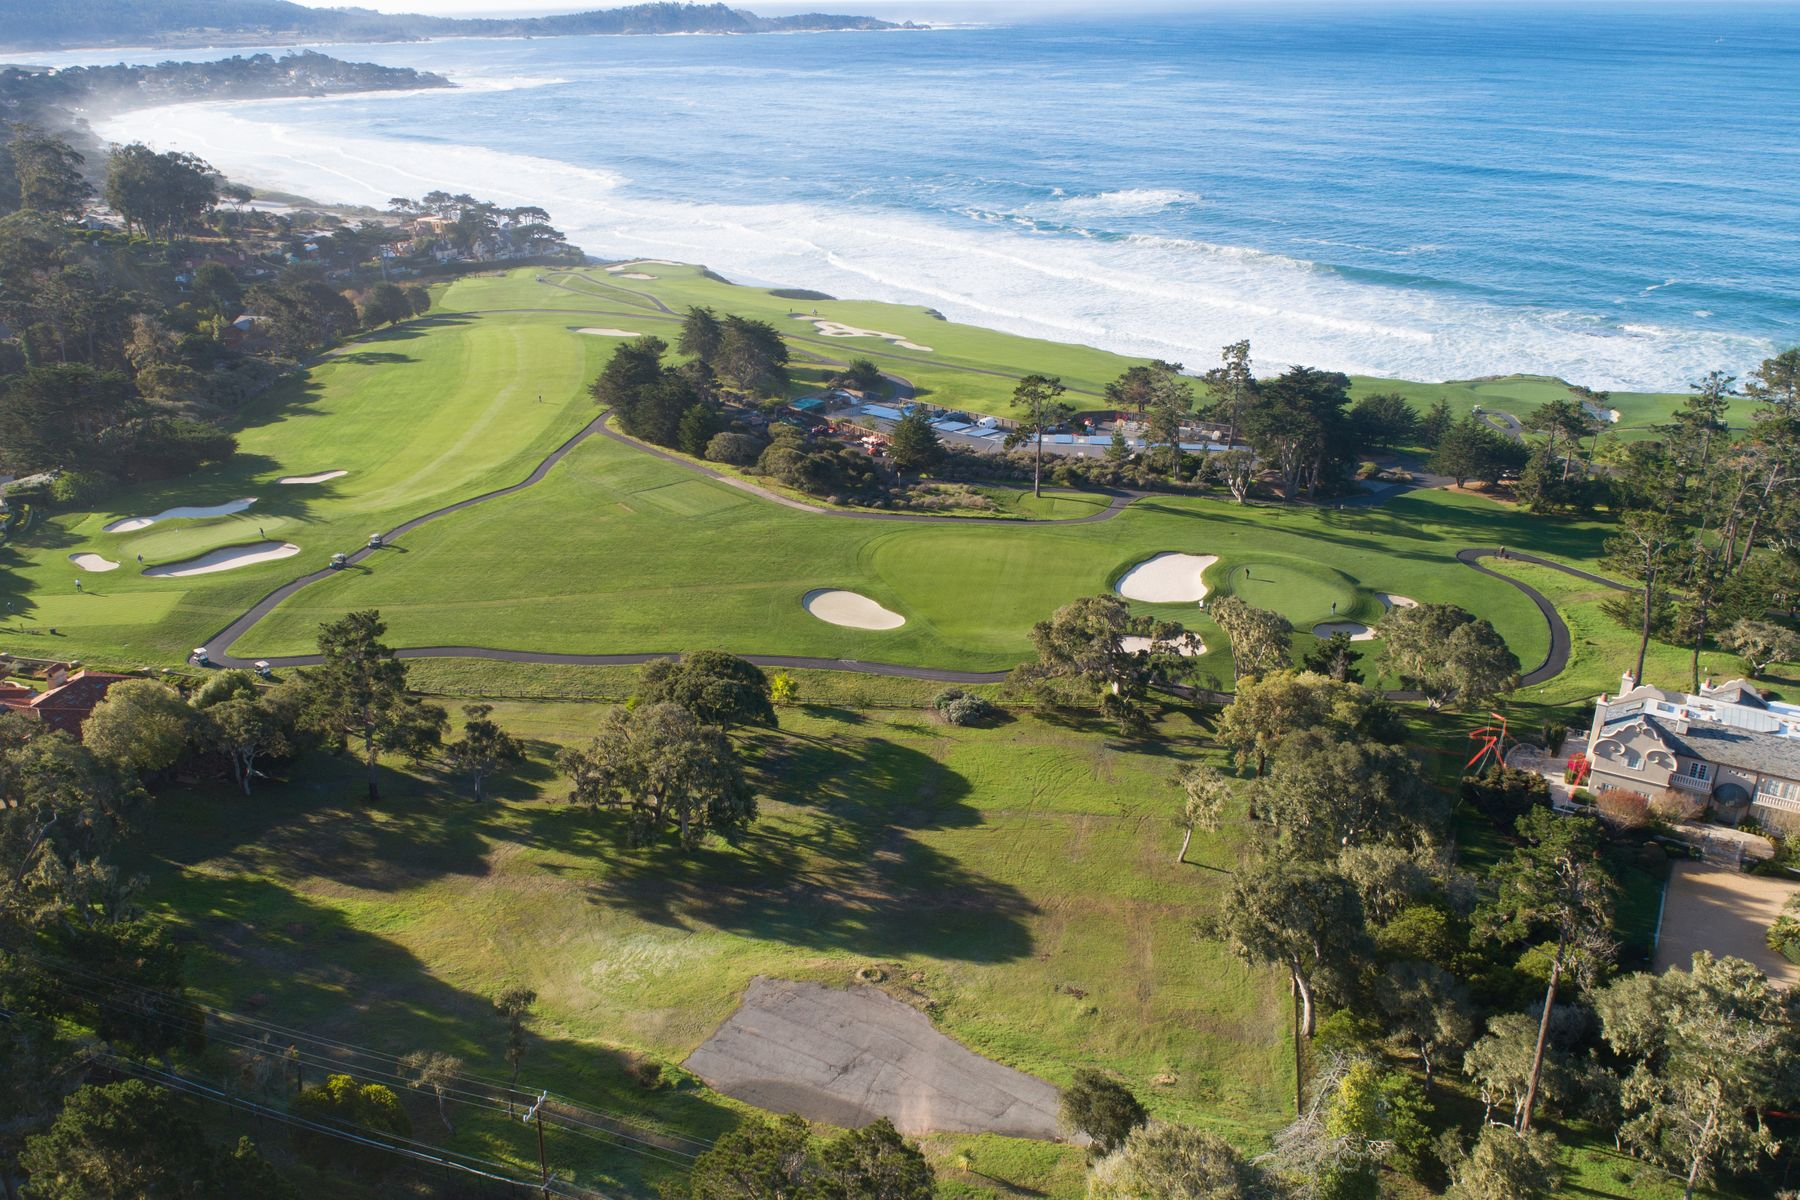 Land for Sale at Two Lots on Pebble Beach Golf Links 3414 17 Mile Drive Pebble Beach, California 93953 United States